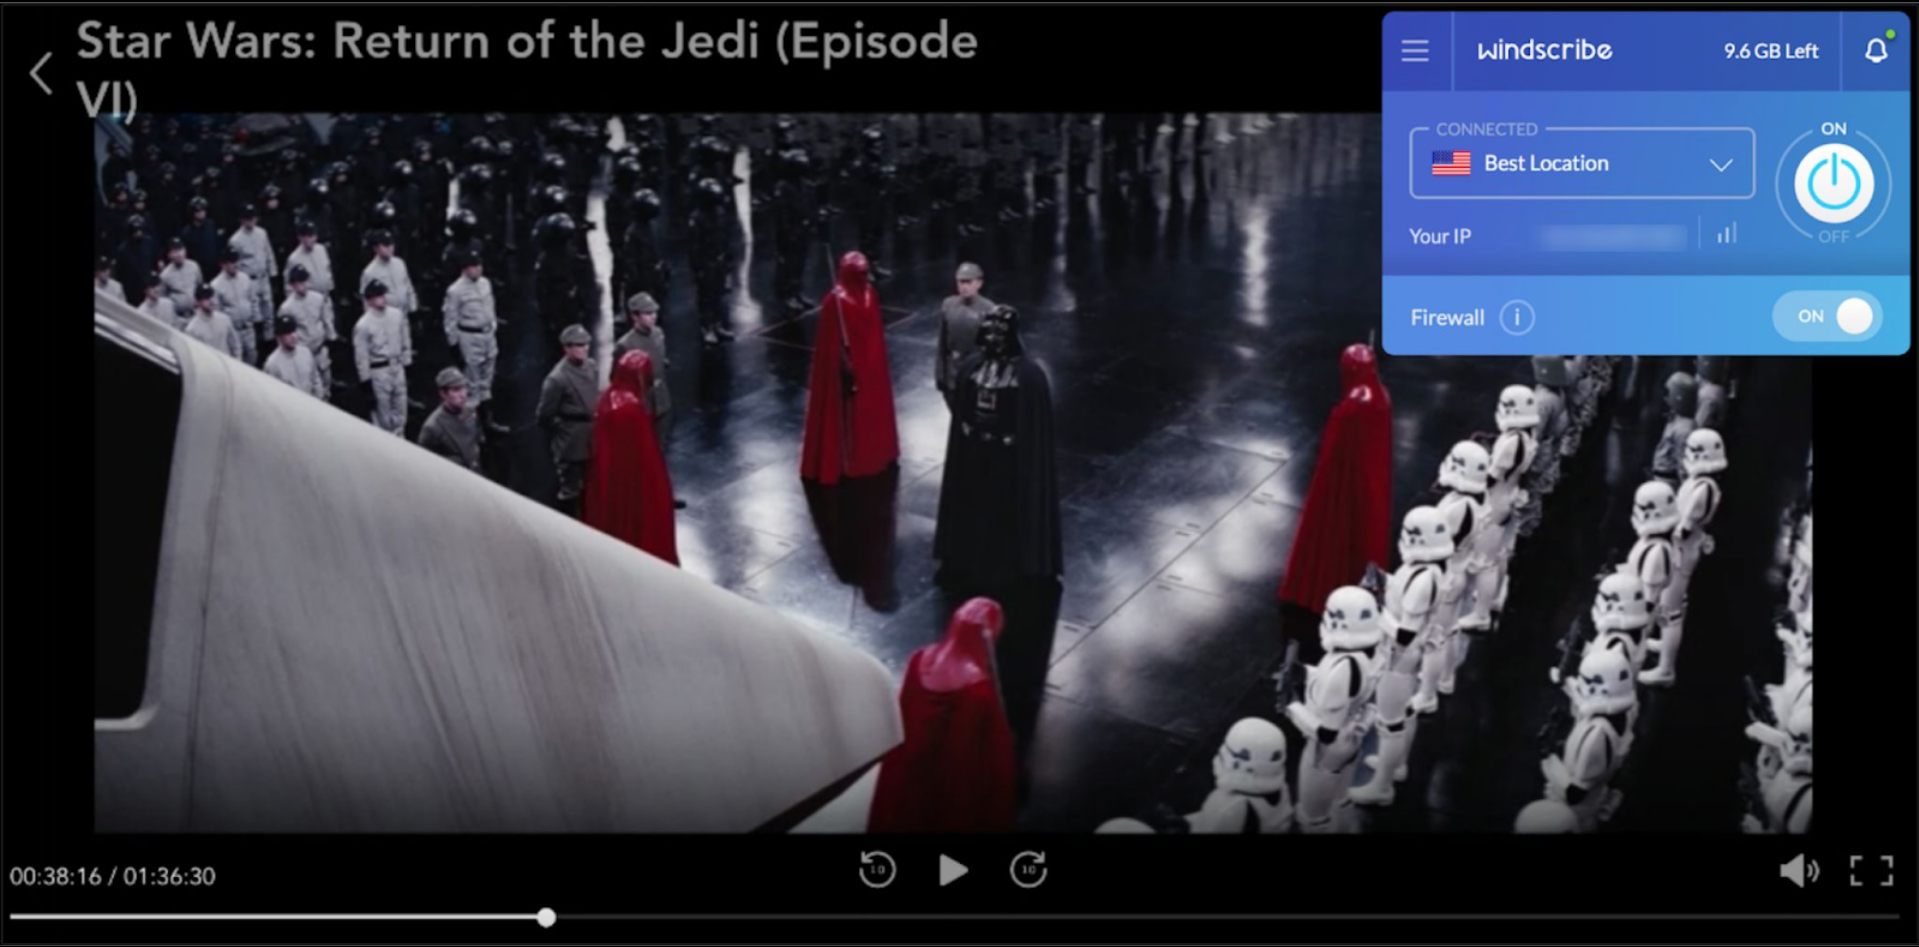 Screenshot of Windscribe unblocking Disney+ with Star Wars on the screen